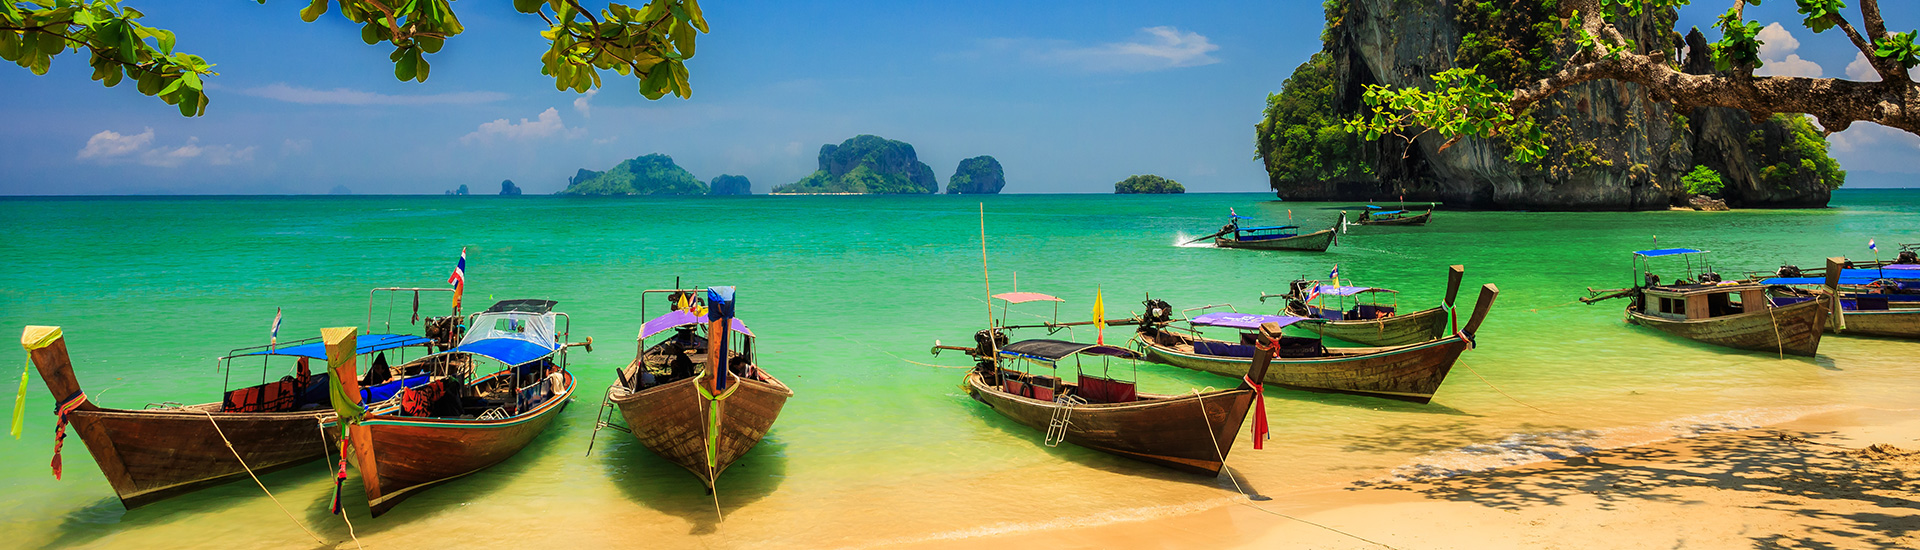 $1499 for 9 days at Koh Samui!